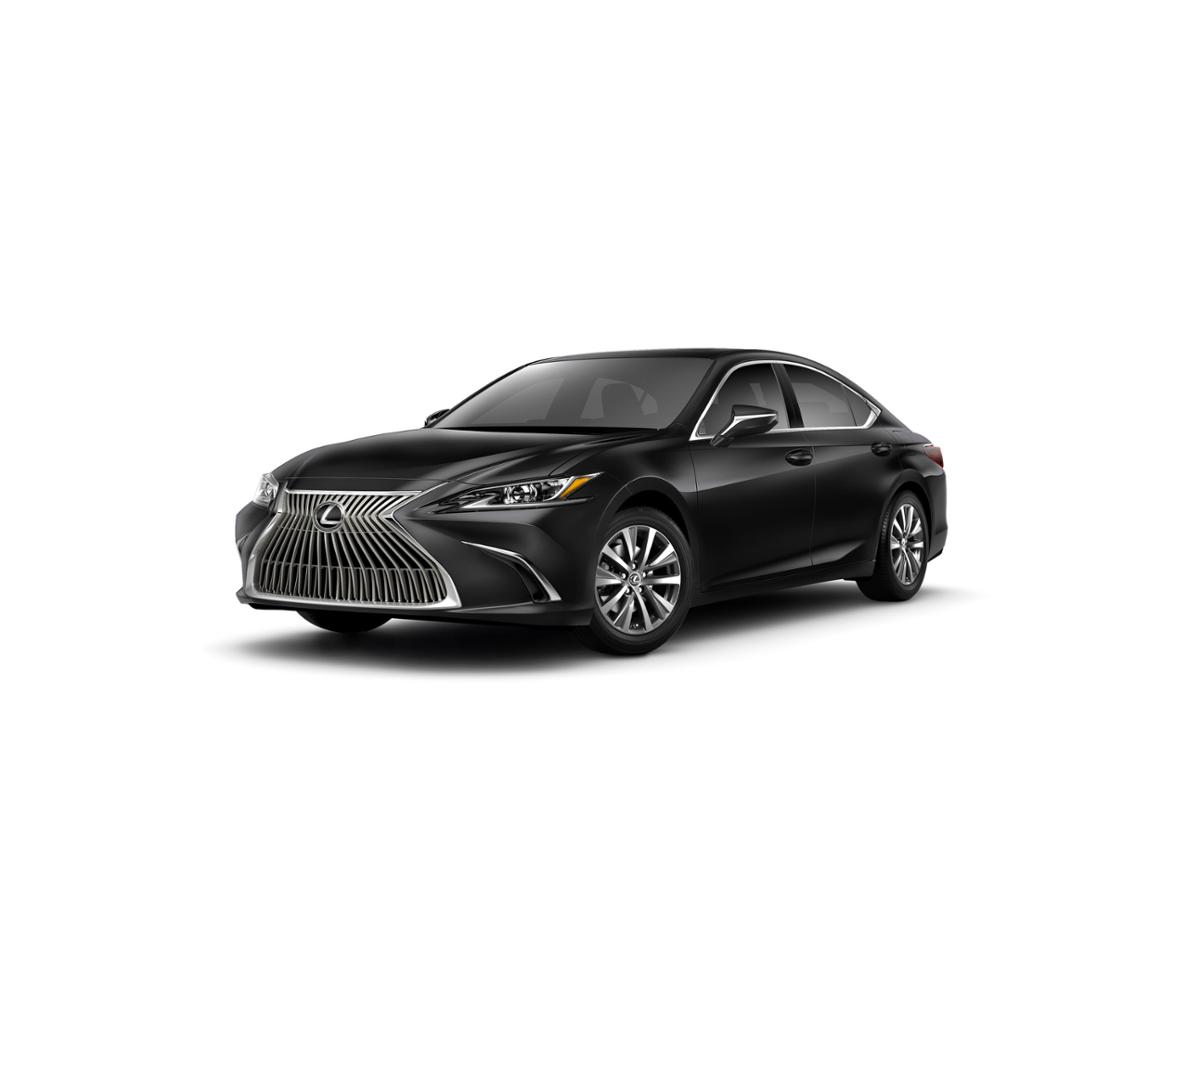 2019 Lexus ES 350 Vehicle Photo in Larchmont, NY 10538